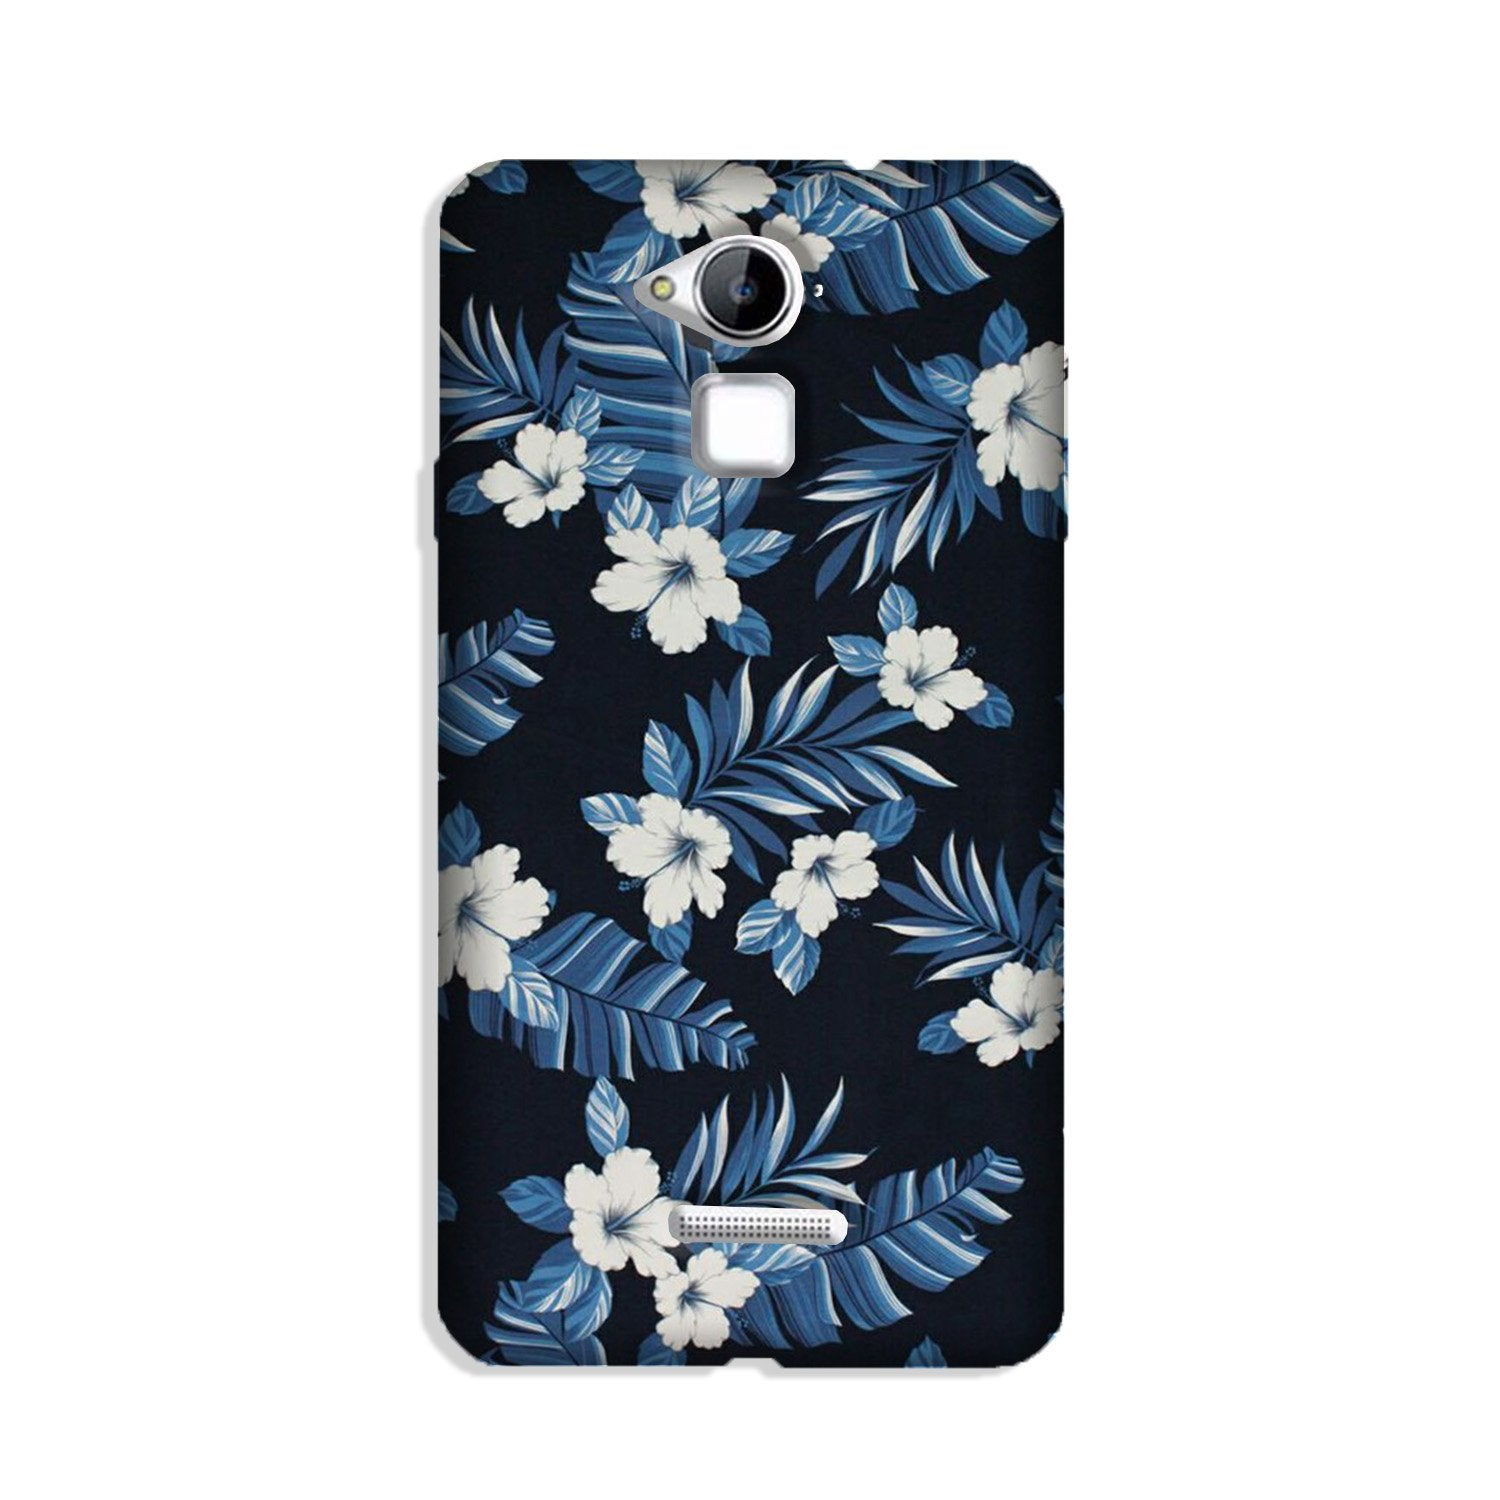 White flowers Blue Background2 Case for Coolpad Note 3